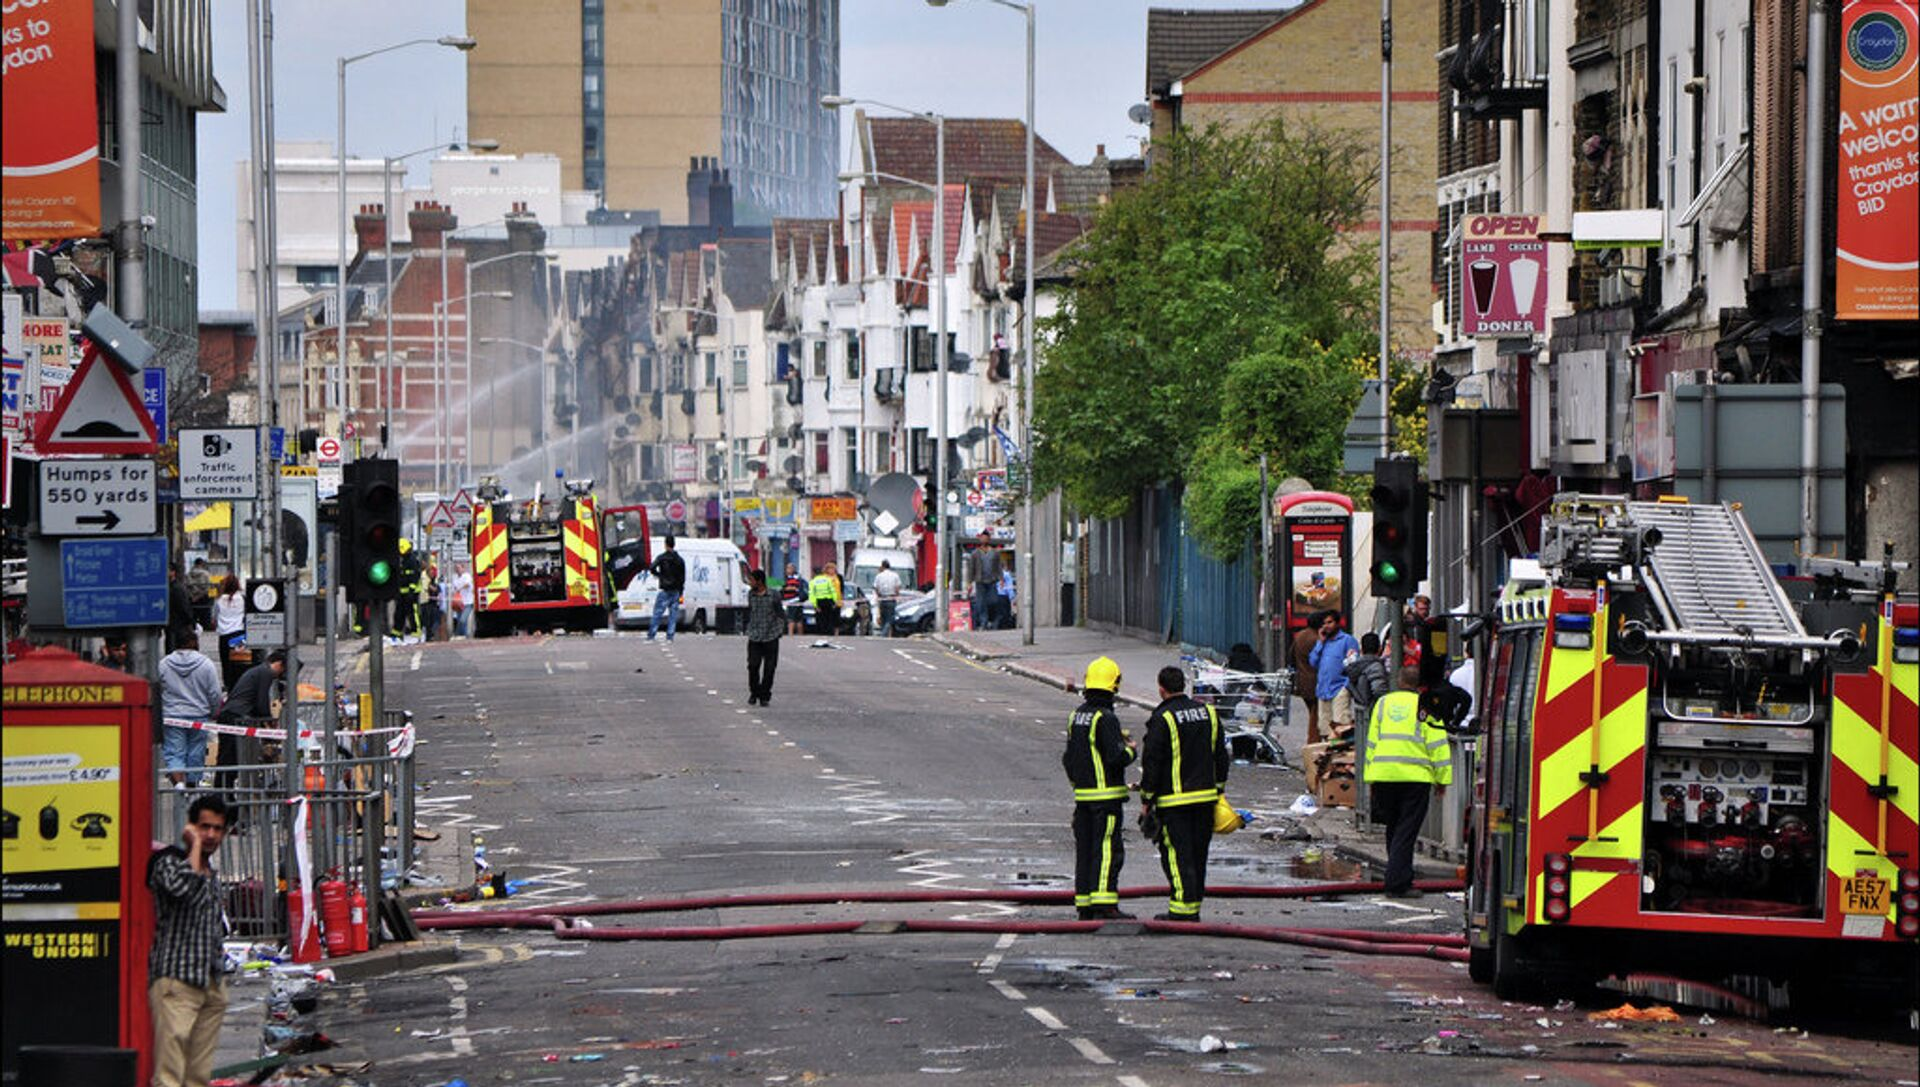 Croydon road looking like a tornado swept up it as fire tenders spray water twelve hours after the fires were set during riots in 2011.  - Sputnik International, 1920, 05.08.2021